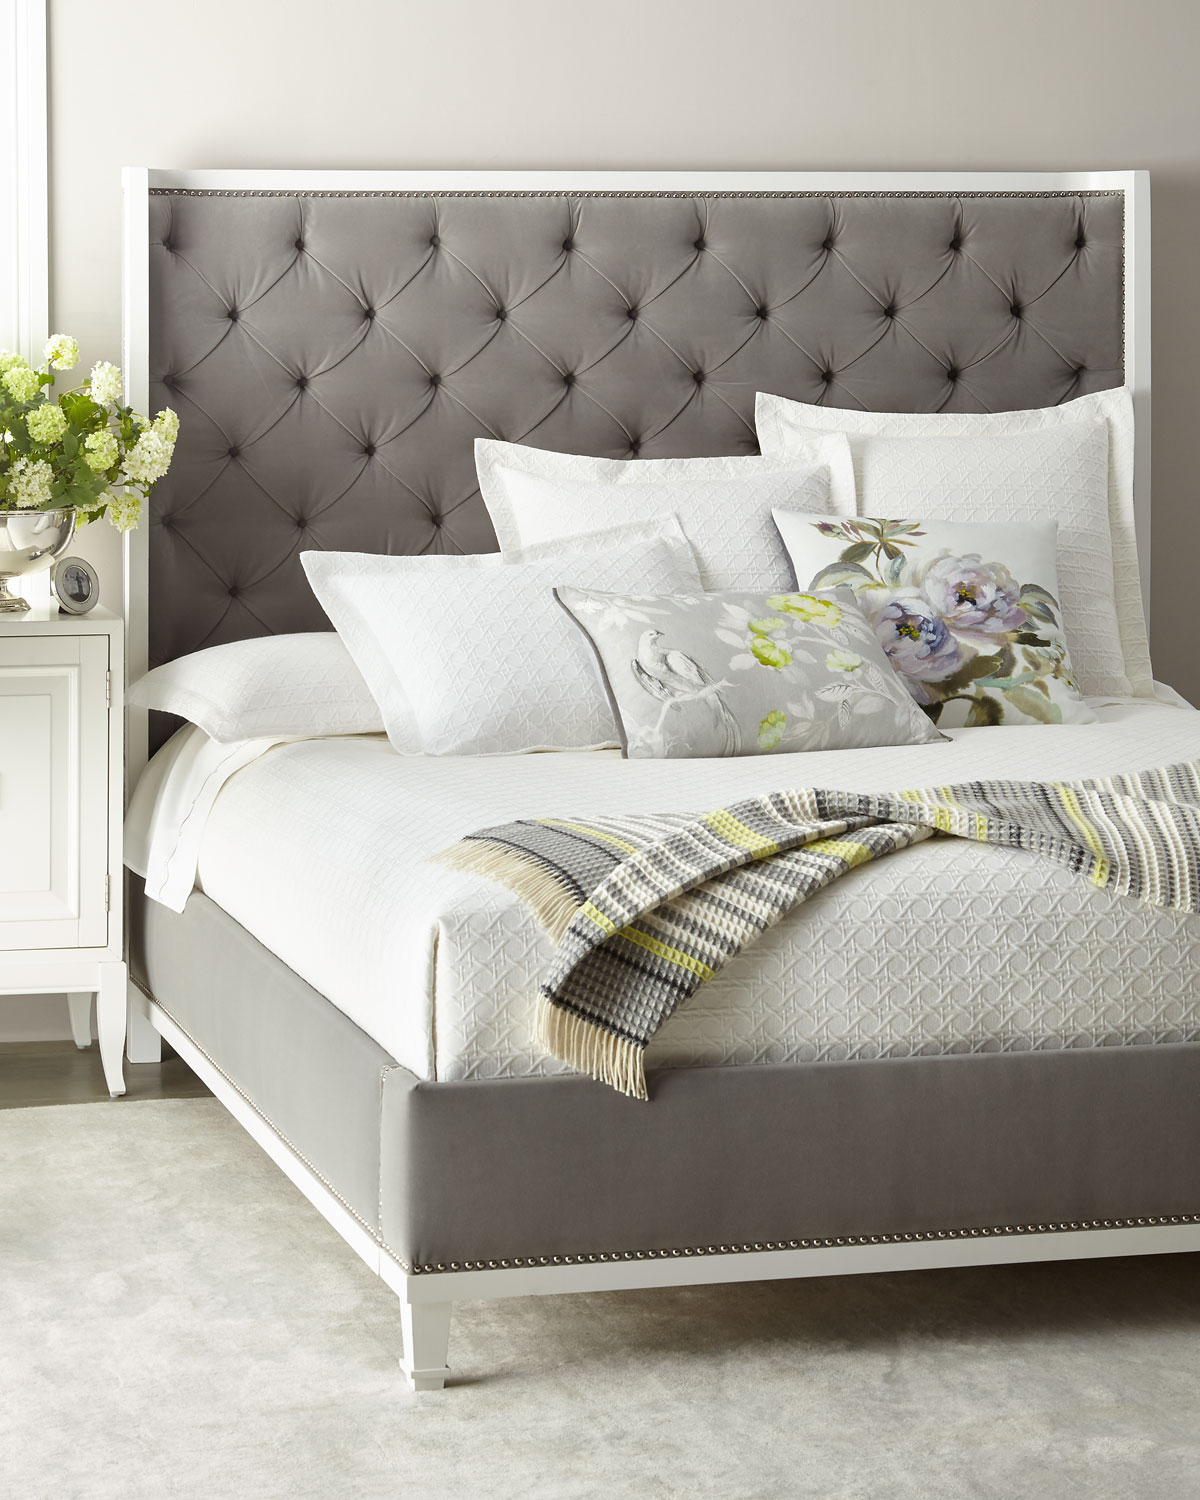 Kindry Tufted King Shelter Bed